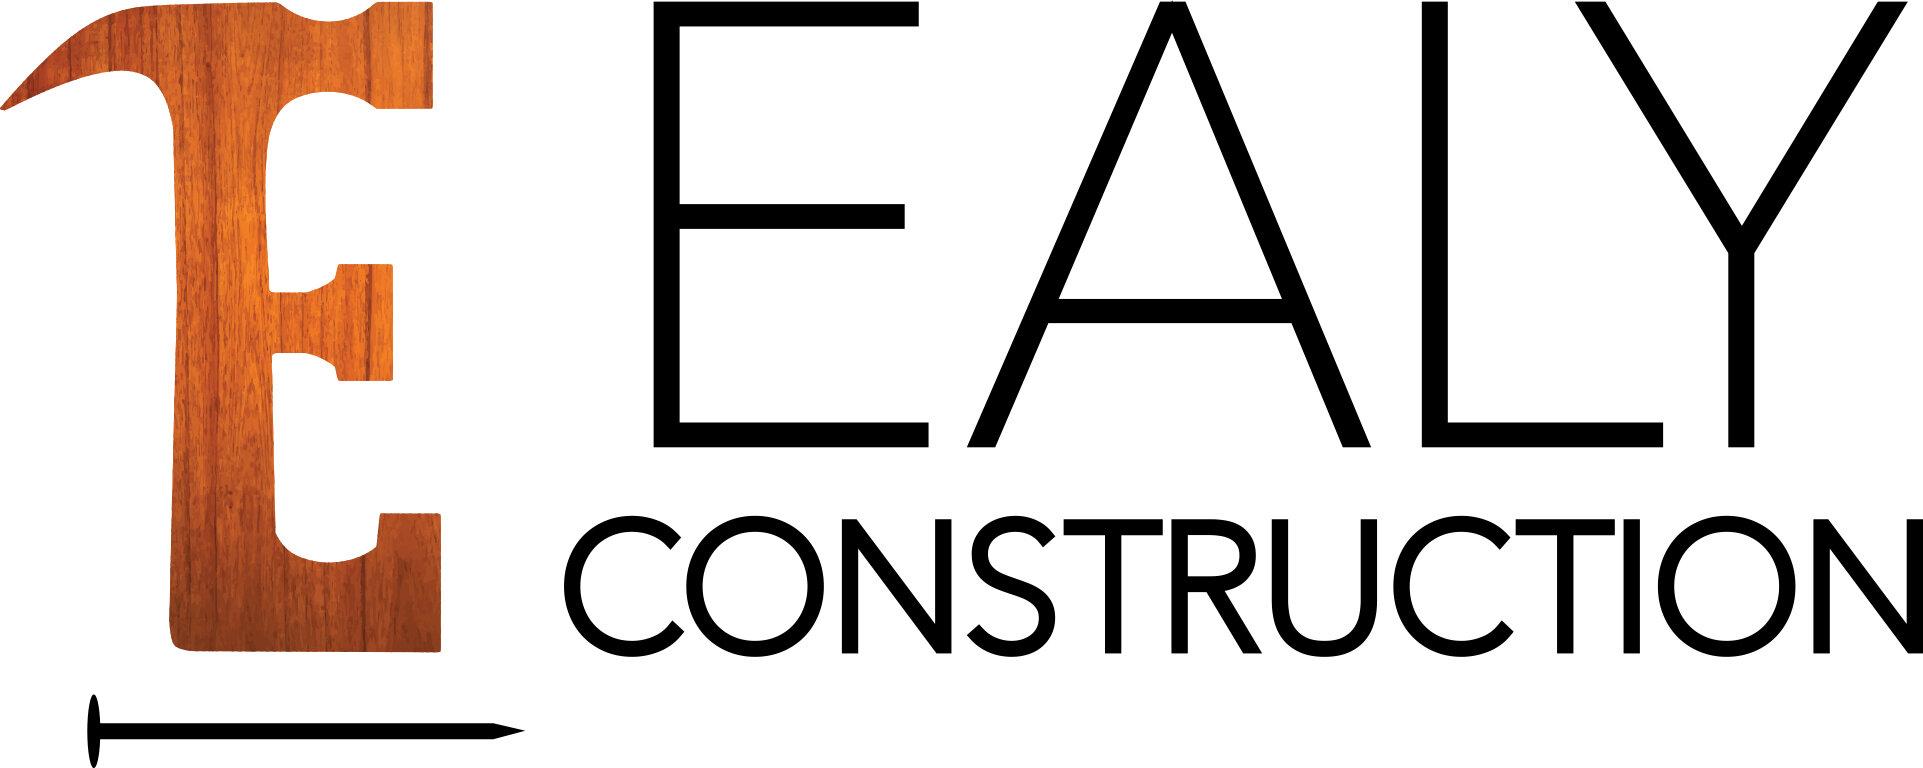 ealy-construction-logo-black-white-background.jpg